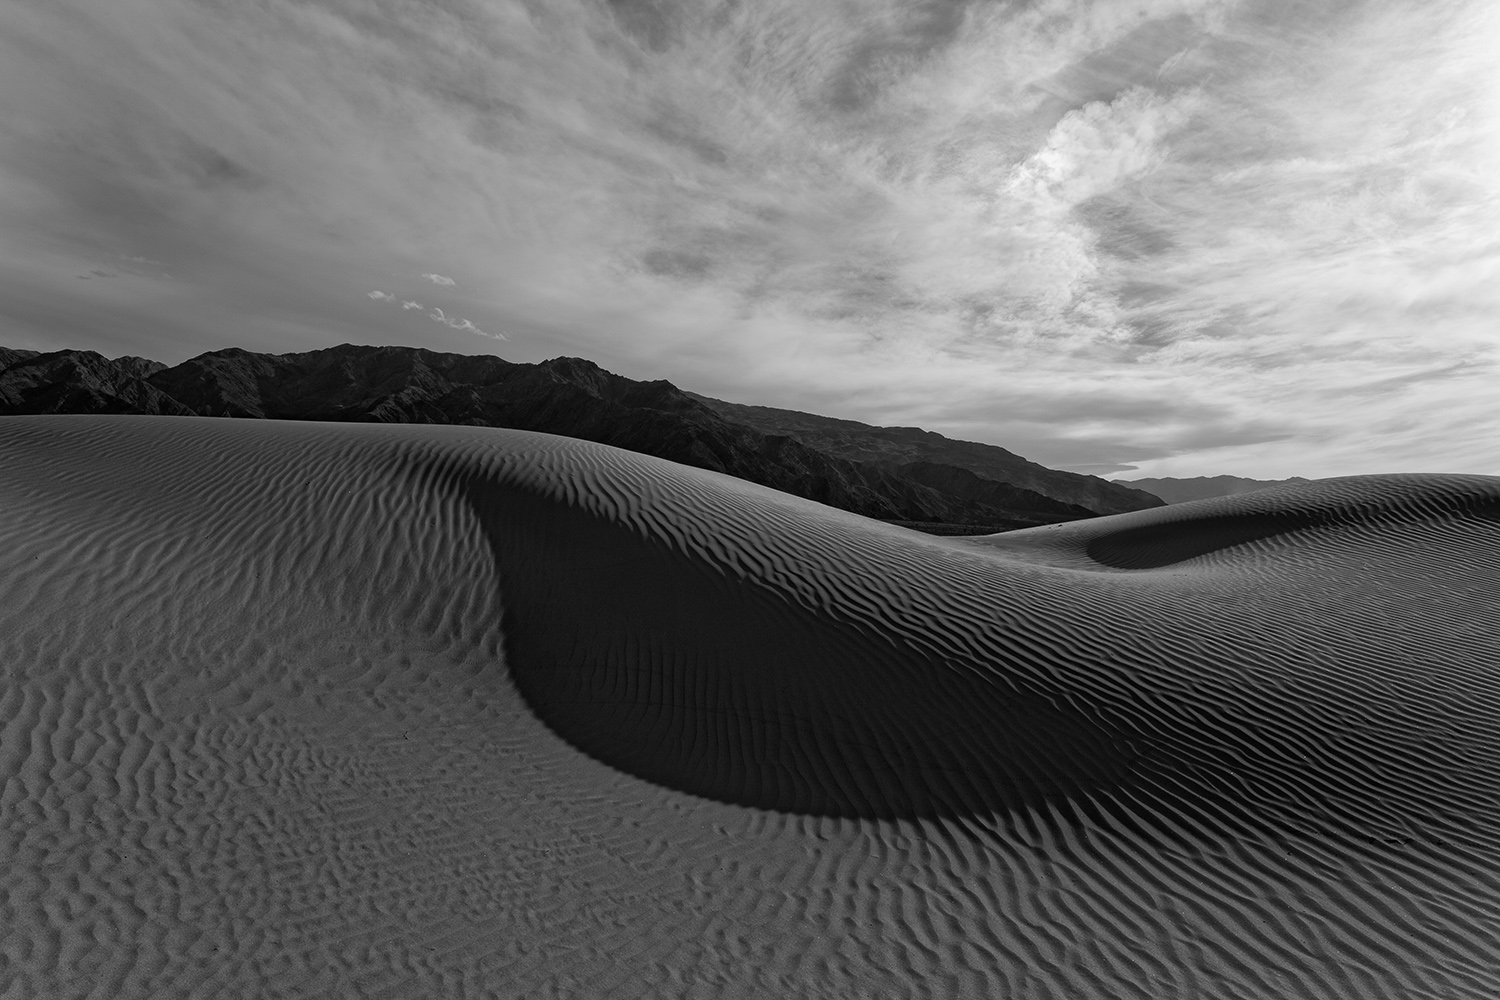 _MG_1589   us mf SEP  Mesquite Dunes, Death Valley.jpg